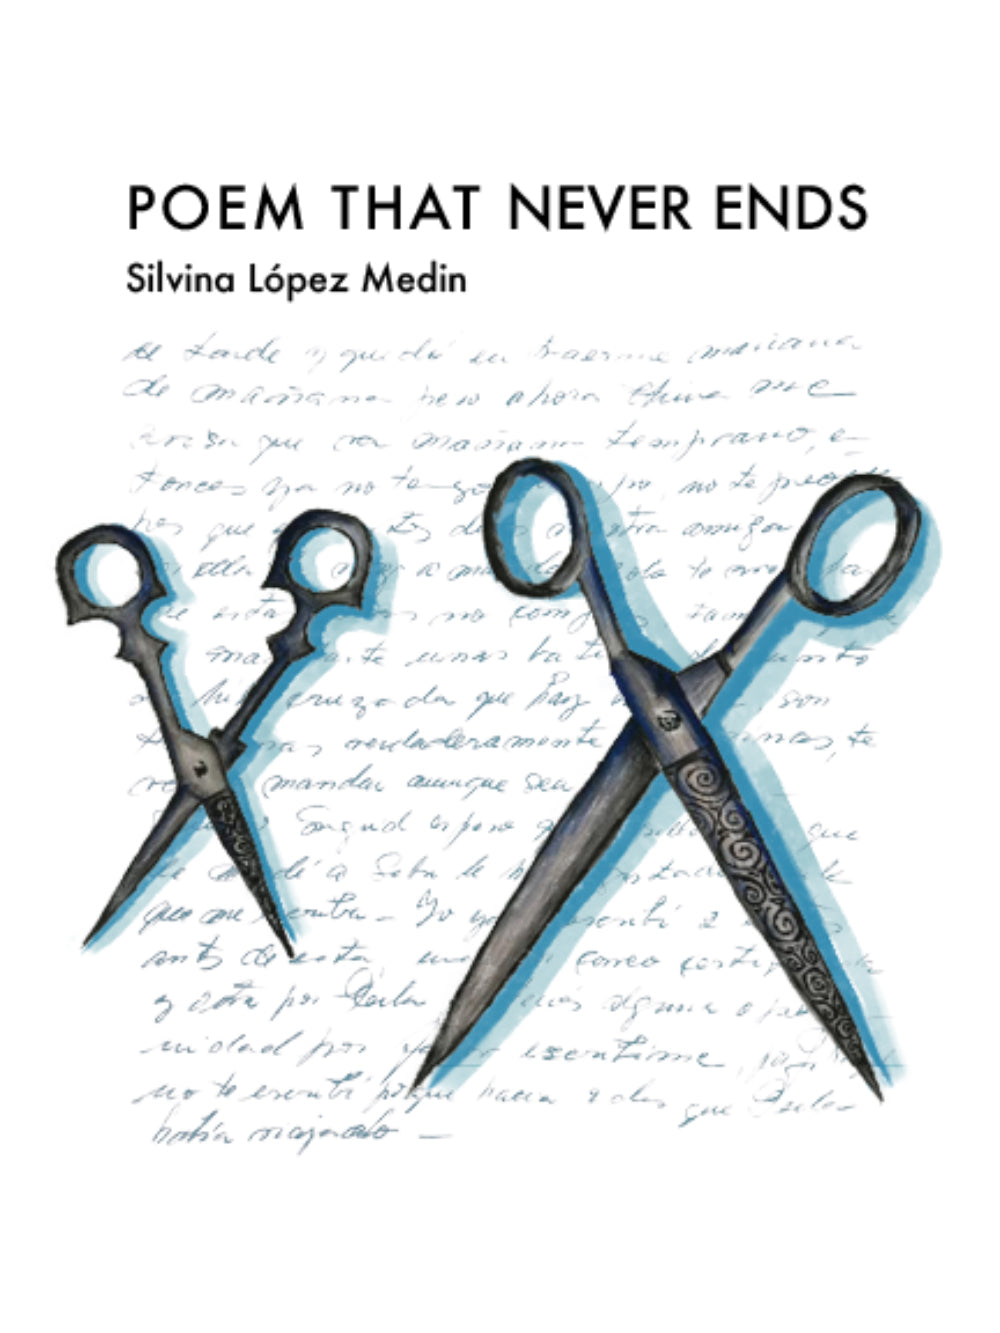 [05/2021] Poem That Never Ends by Silvina López Medin